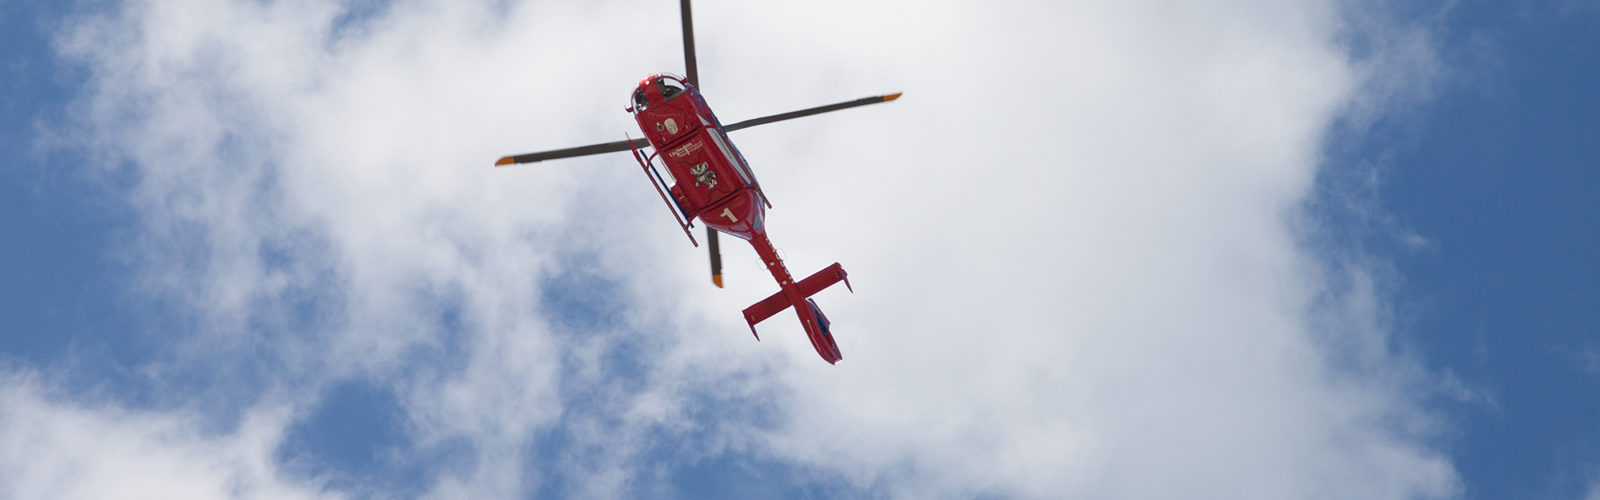 Shot from below, MedFlight in air, above viewer, hovers above University Hospital, UW-Madison, awaiting clearance to land